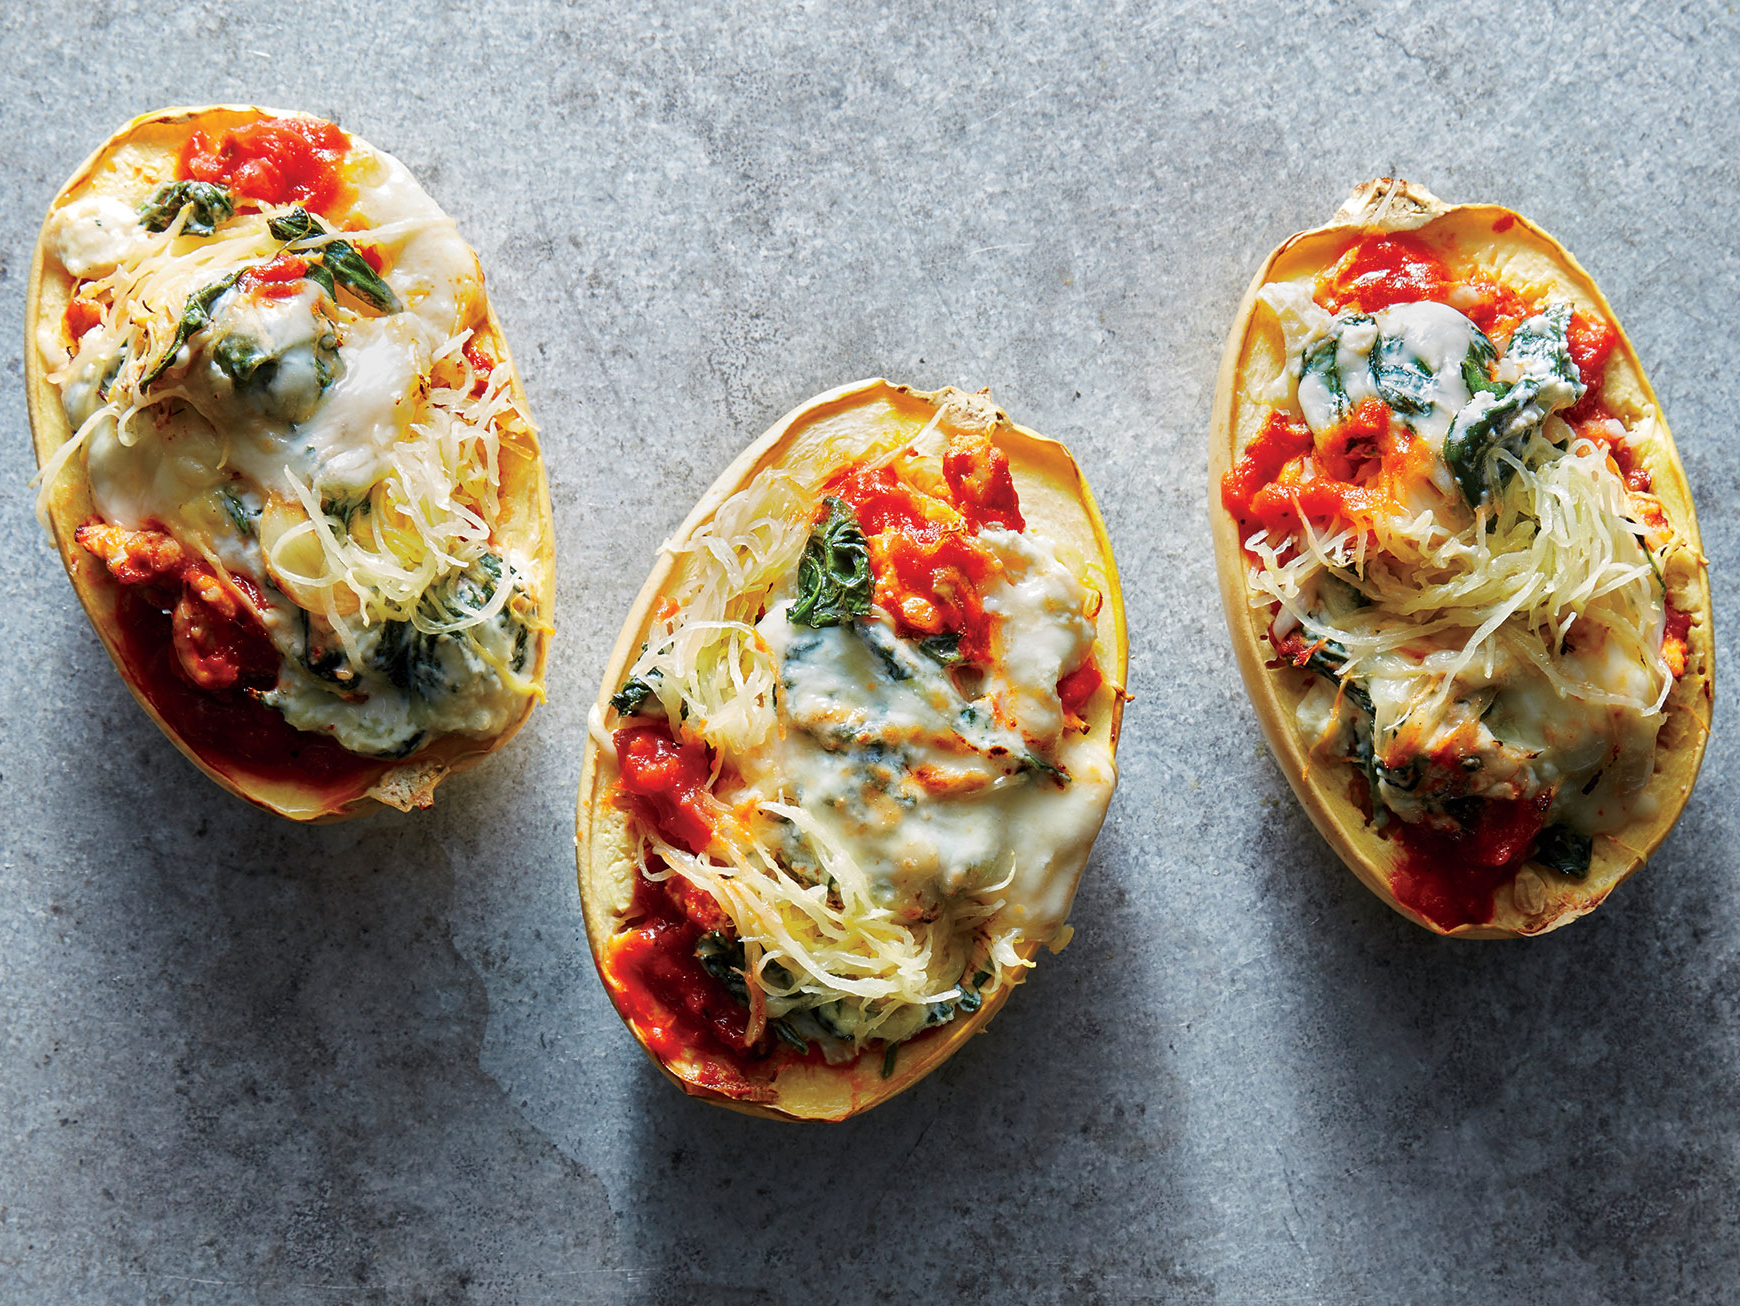 Healthy and Hearty Spaghetti Squash Recipes